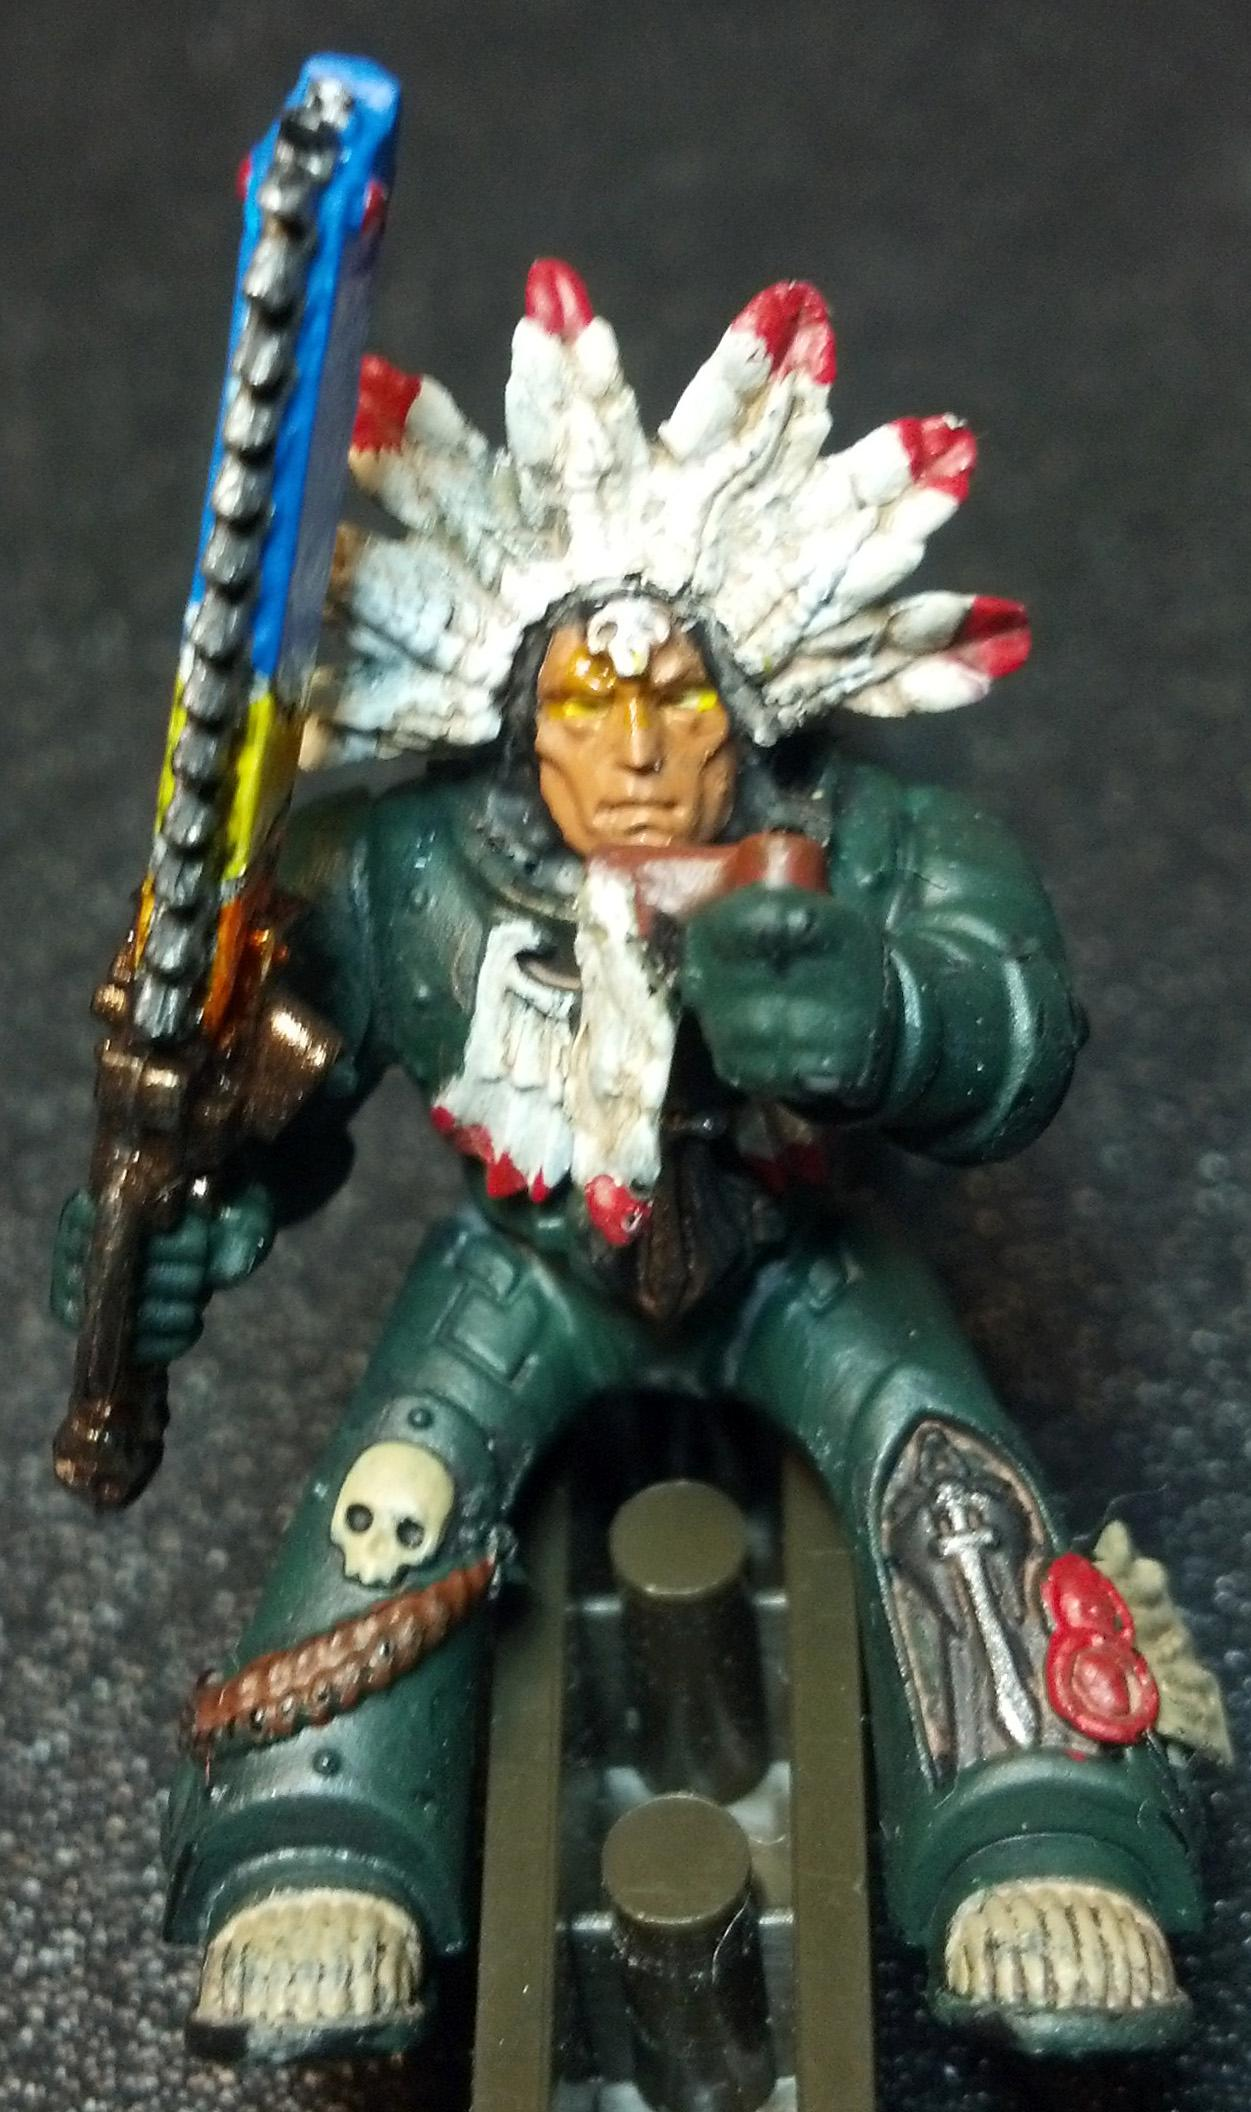 Army, Battle, Ceremony, Dark Angels, Feathers, Future, Imperium, Indian, Military, Native American, Ritual, Space Marines, Warhammer 40,000